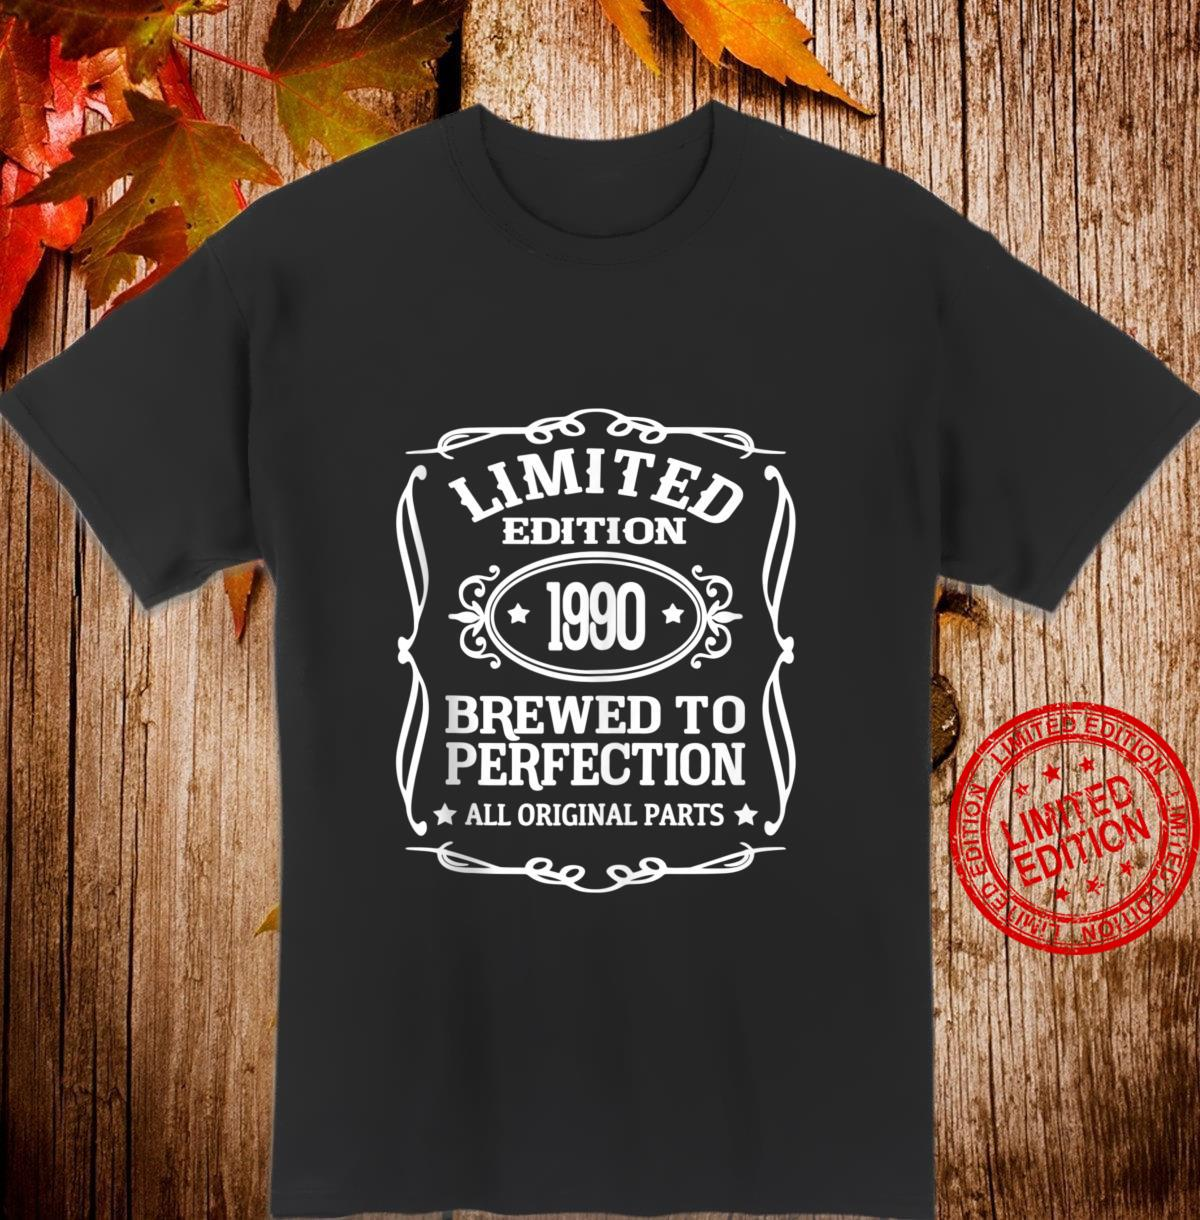 Limited Edition 1990 Brewed To Perfection Shirt